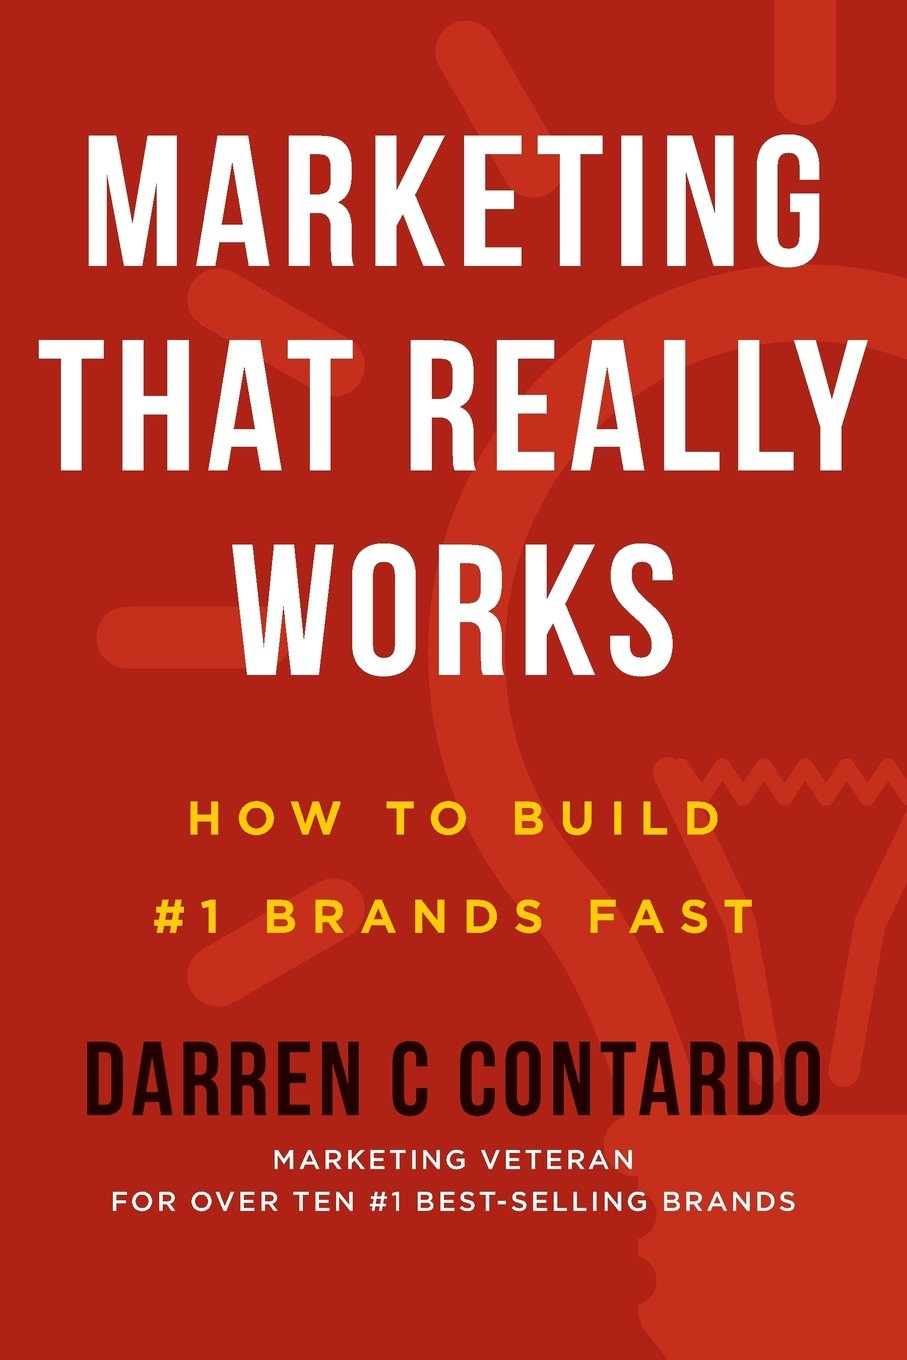 What is marketing that really works?